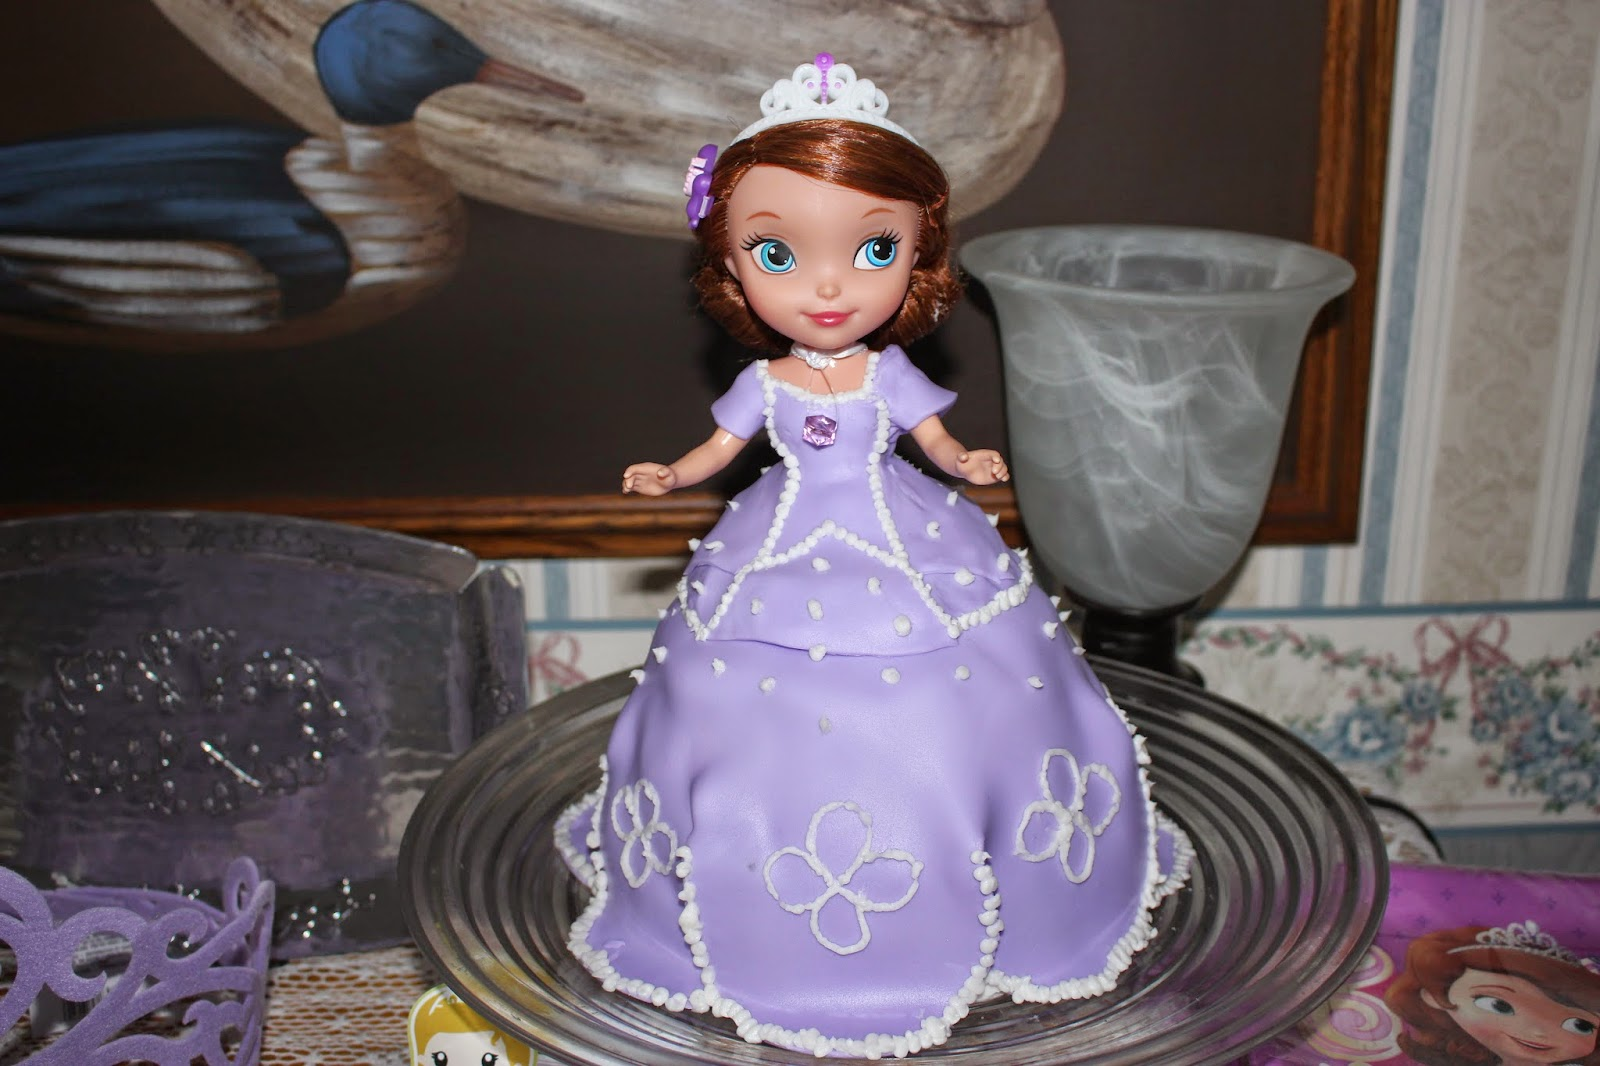 Hootabration - Parties and Entertaining: Sofia the First ...